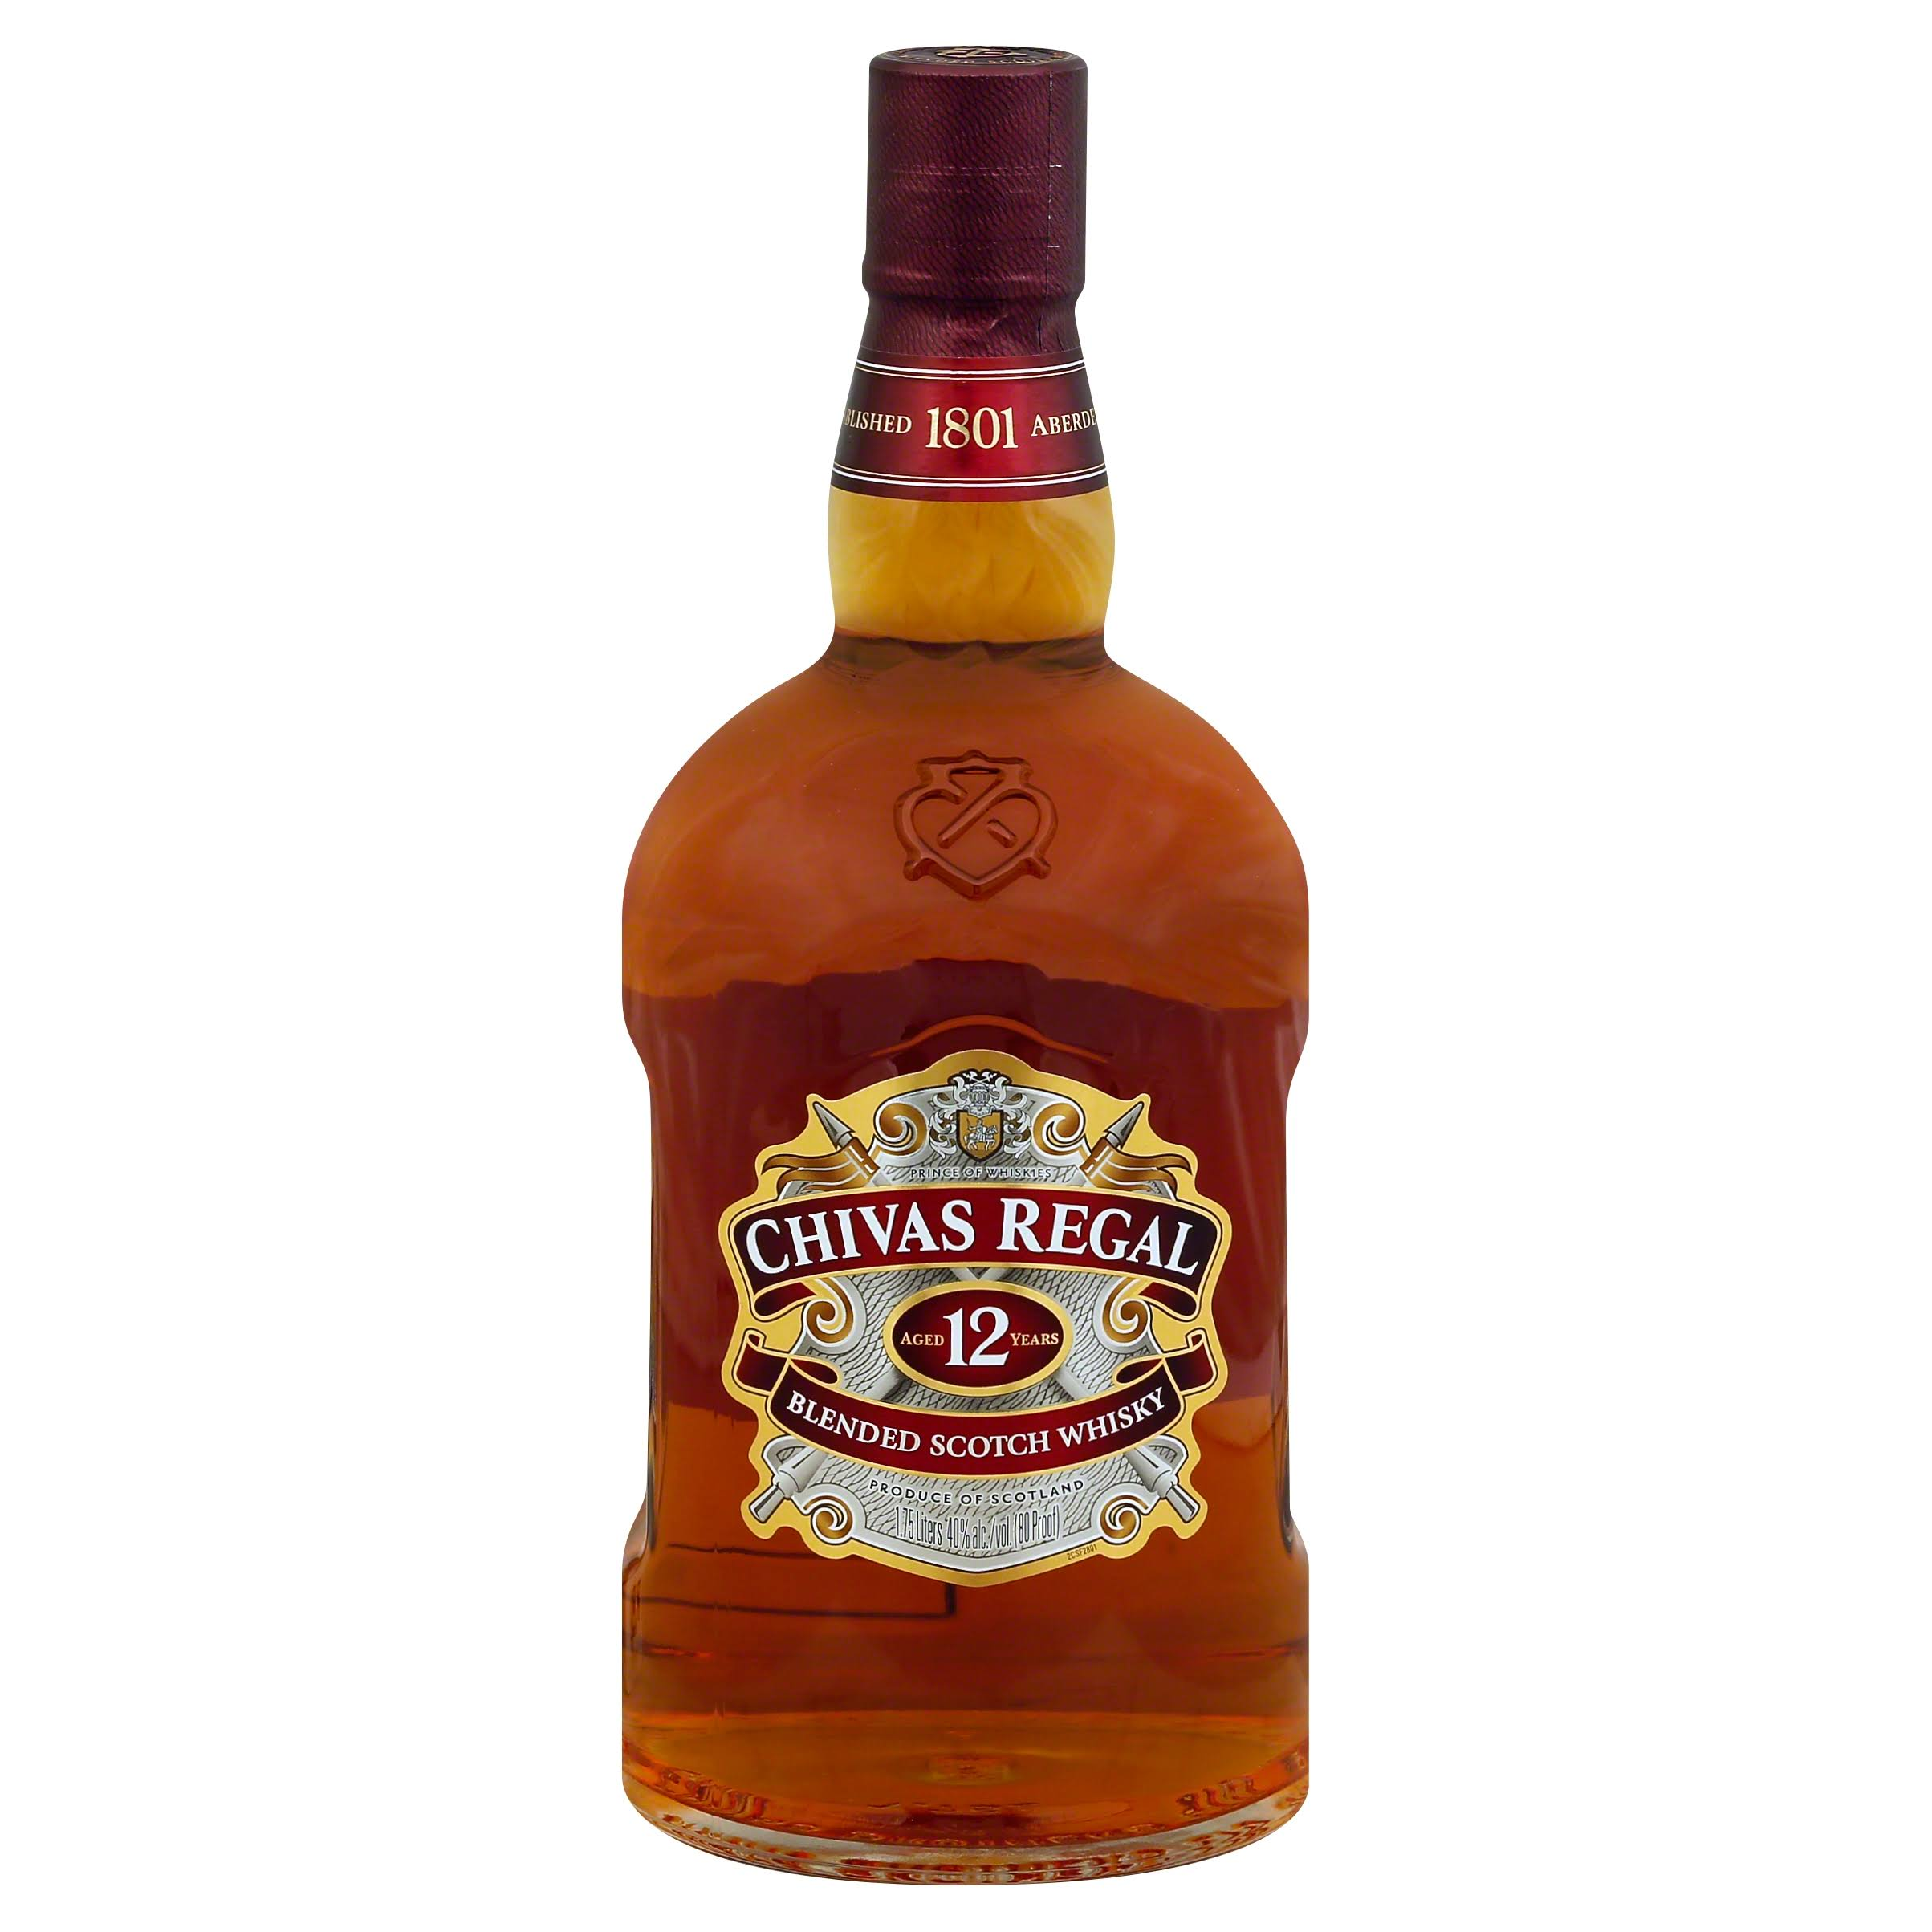 Chivas Regal Premium Blended Scotch Whisky